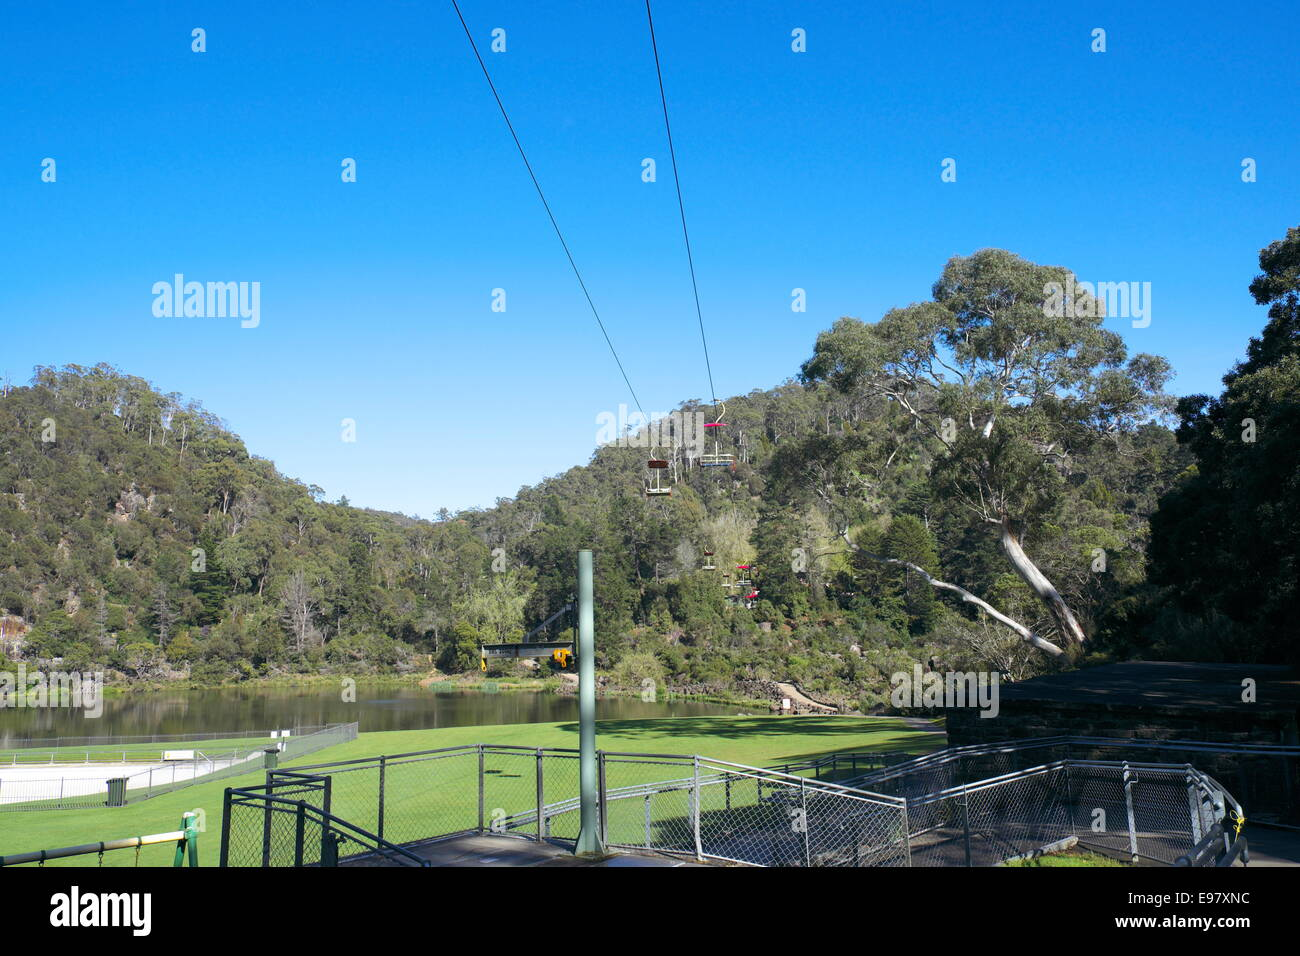 first basin chairlift covering 457 m at cataract gorge,launceston,tasmania,australia, the chairlift was built in Stock Photo